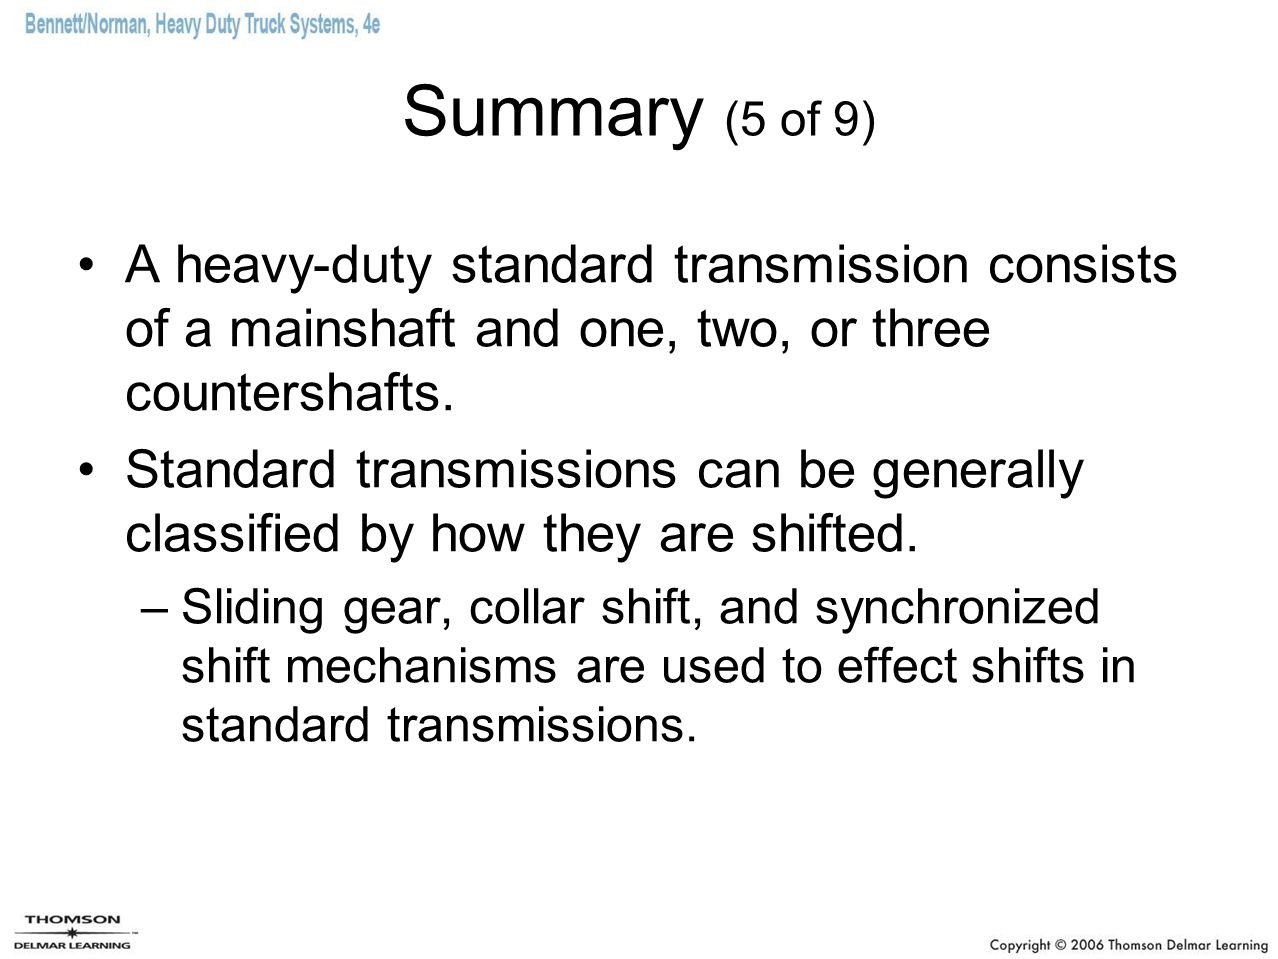 Summary (5 of 9) A heavy-duty standard transmission consists of a mainshaft and one, two, or three countershafts.